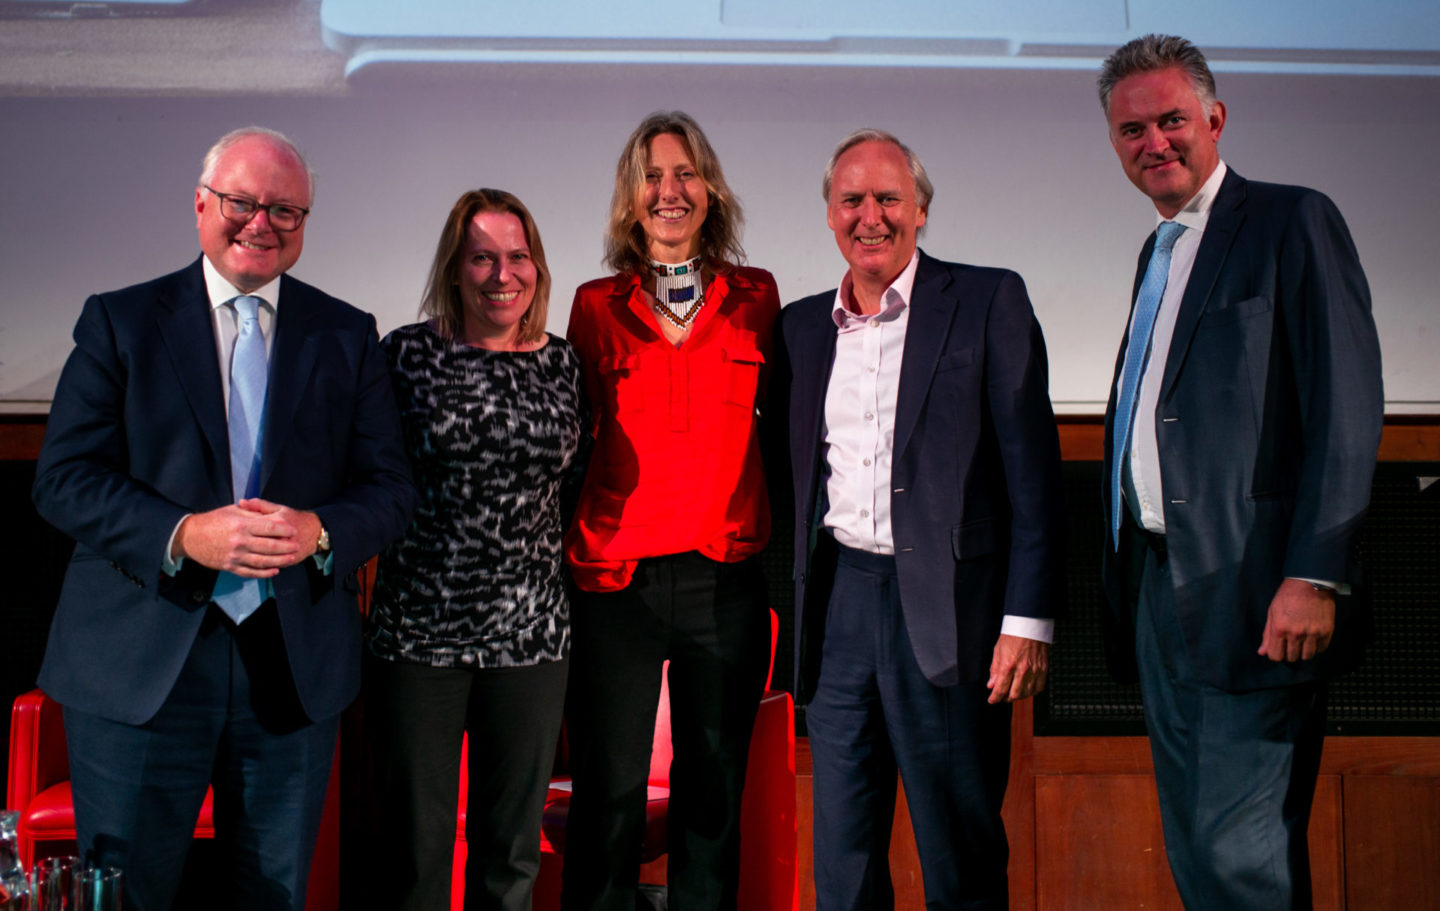 L-R: Stephen Watson (Tusk Chairman), Amy Dickman, Alayne Cotterill, Charlie Mayhew (Tusk CEO) and Jasper Berens (Artemis Head of Distribution)